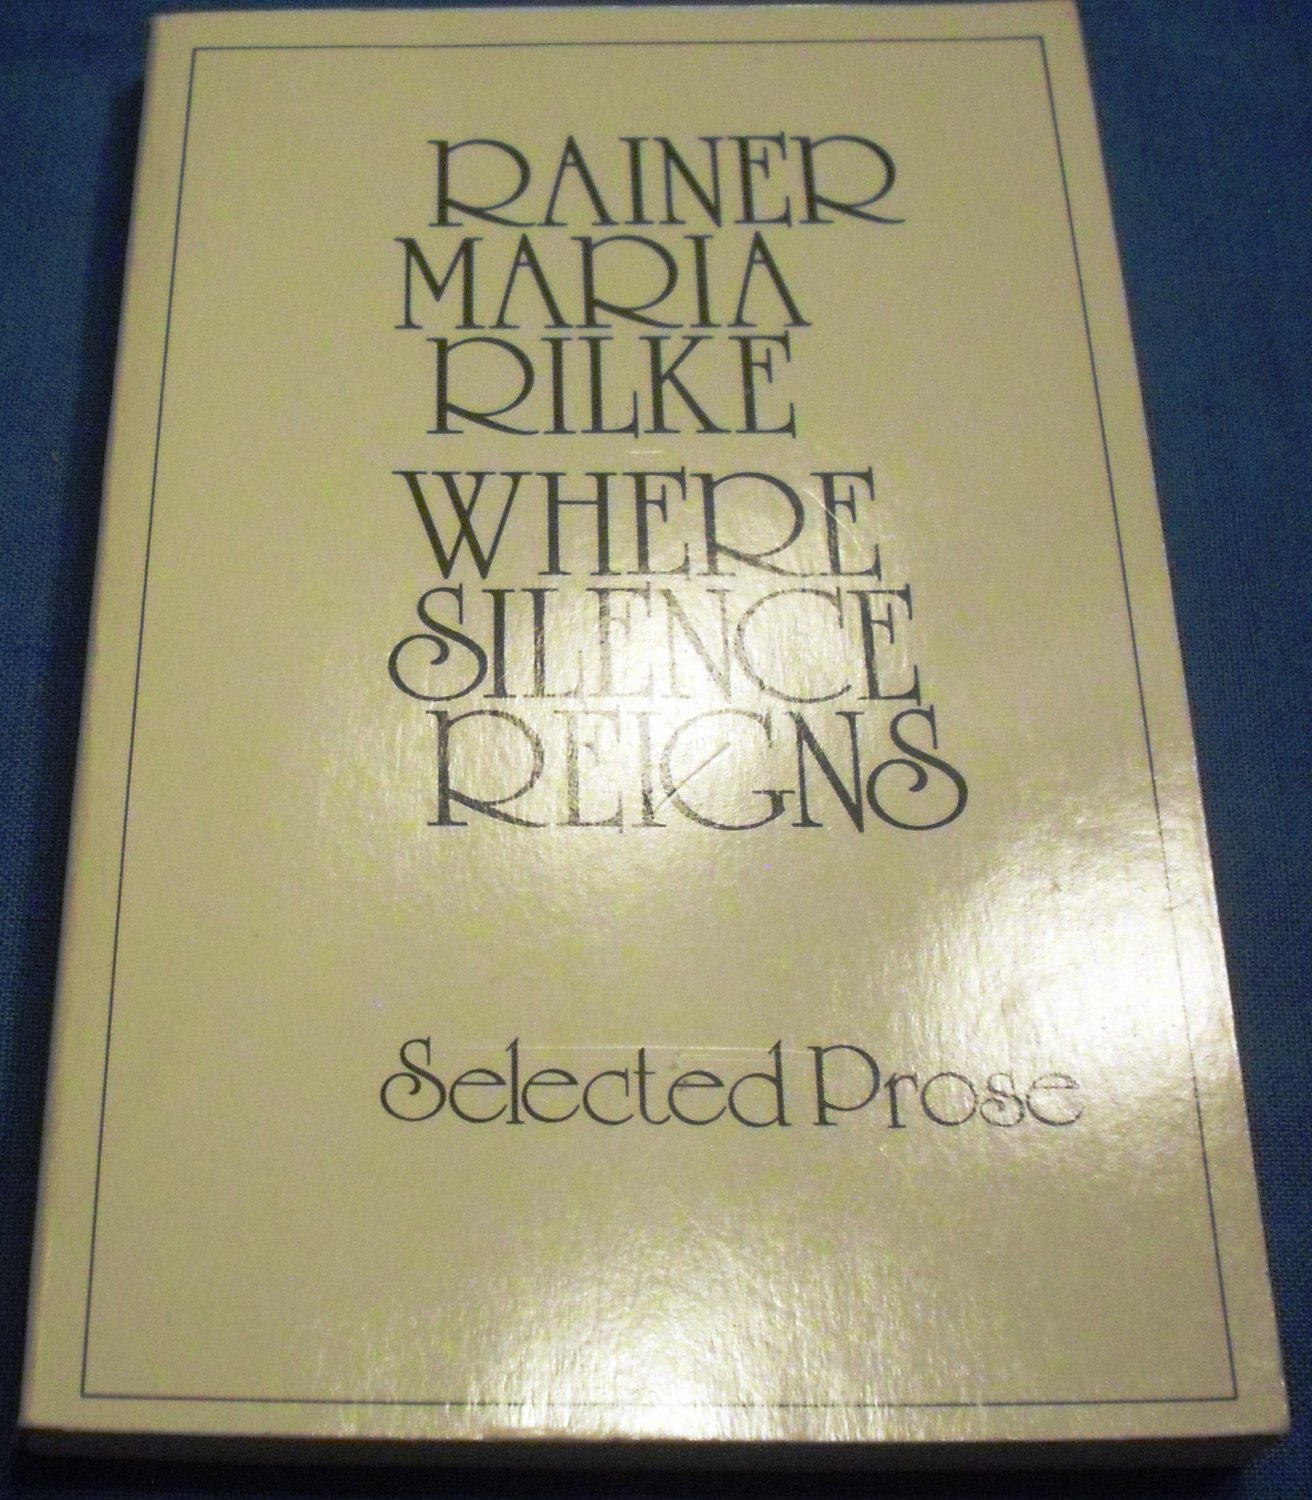 Where Silence Reigns: Selected Prose by Rainer Maria Rilke, Houston & D. Levertov (Jan 17, 1978)